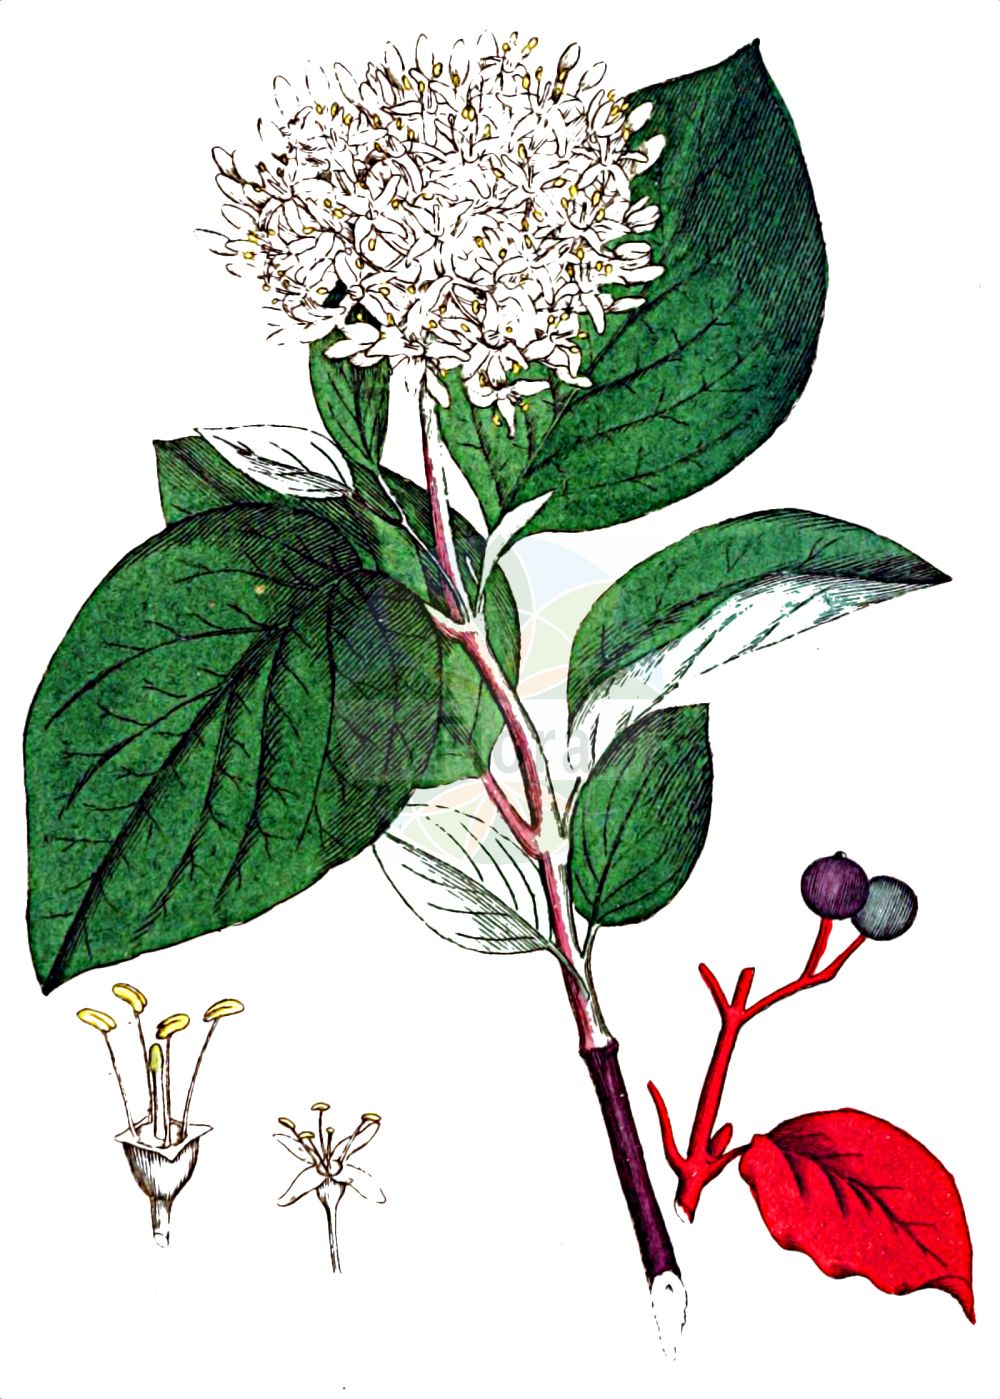 Historische Abbildung von Cornus sanguinea (Blutroter Hartriegel - Dogwood). Das Bild zeigt Blatt, Bluete, Frucht und Same. ---- Historical Drawing of Cornus sanguinea (Blutroter Hartriegel - Dogwood).The image is showing leaf, flower, fruit and seed.(Cornus sanguinea,Blutroter Hartriegel,Dogwood,Cornus sanguinea,Swida sanguinea,Thelycrania sanguinea,Blutroter Hartriegel,Roter Hartriegel,Roter Hornstrauch,Rot-Hartriegel,Dogwood,Blood-twig Cornel,Bloodtwig Dogwood,Bloody-twig Dogwood,Common Dogwood,Dogberry,Cornus,Hartriegel,Cornel,Cornaceae,Hartriegelgewaechse,Dogwood family,Blatt,Bluete,Frucht,Same,leaf,flower,fruit,seed,Palmstruch (1807-1843))